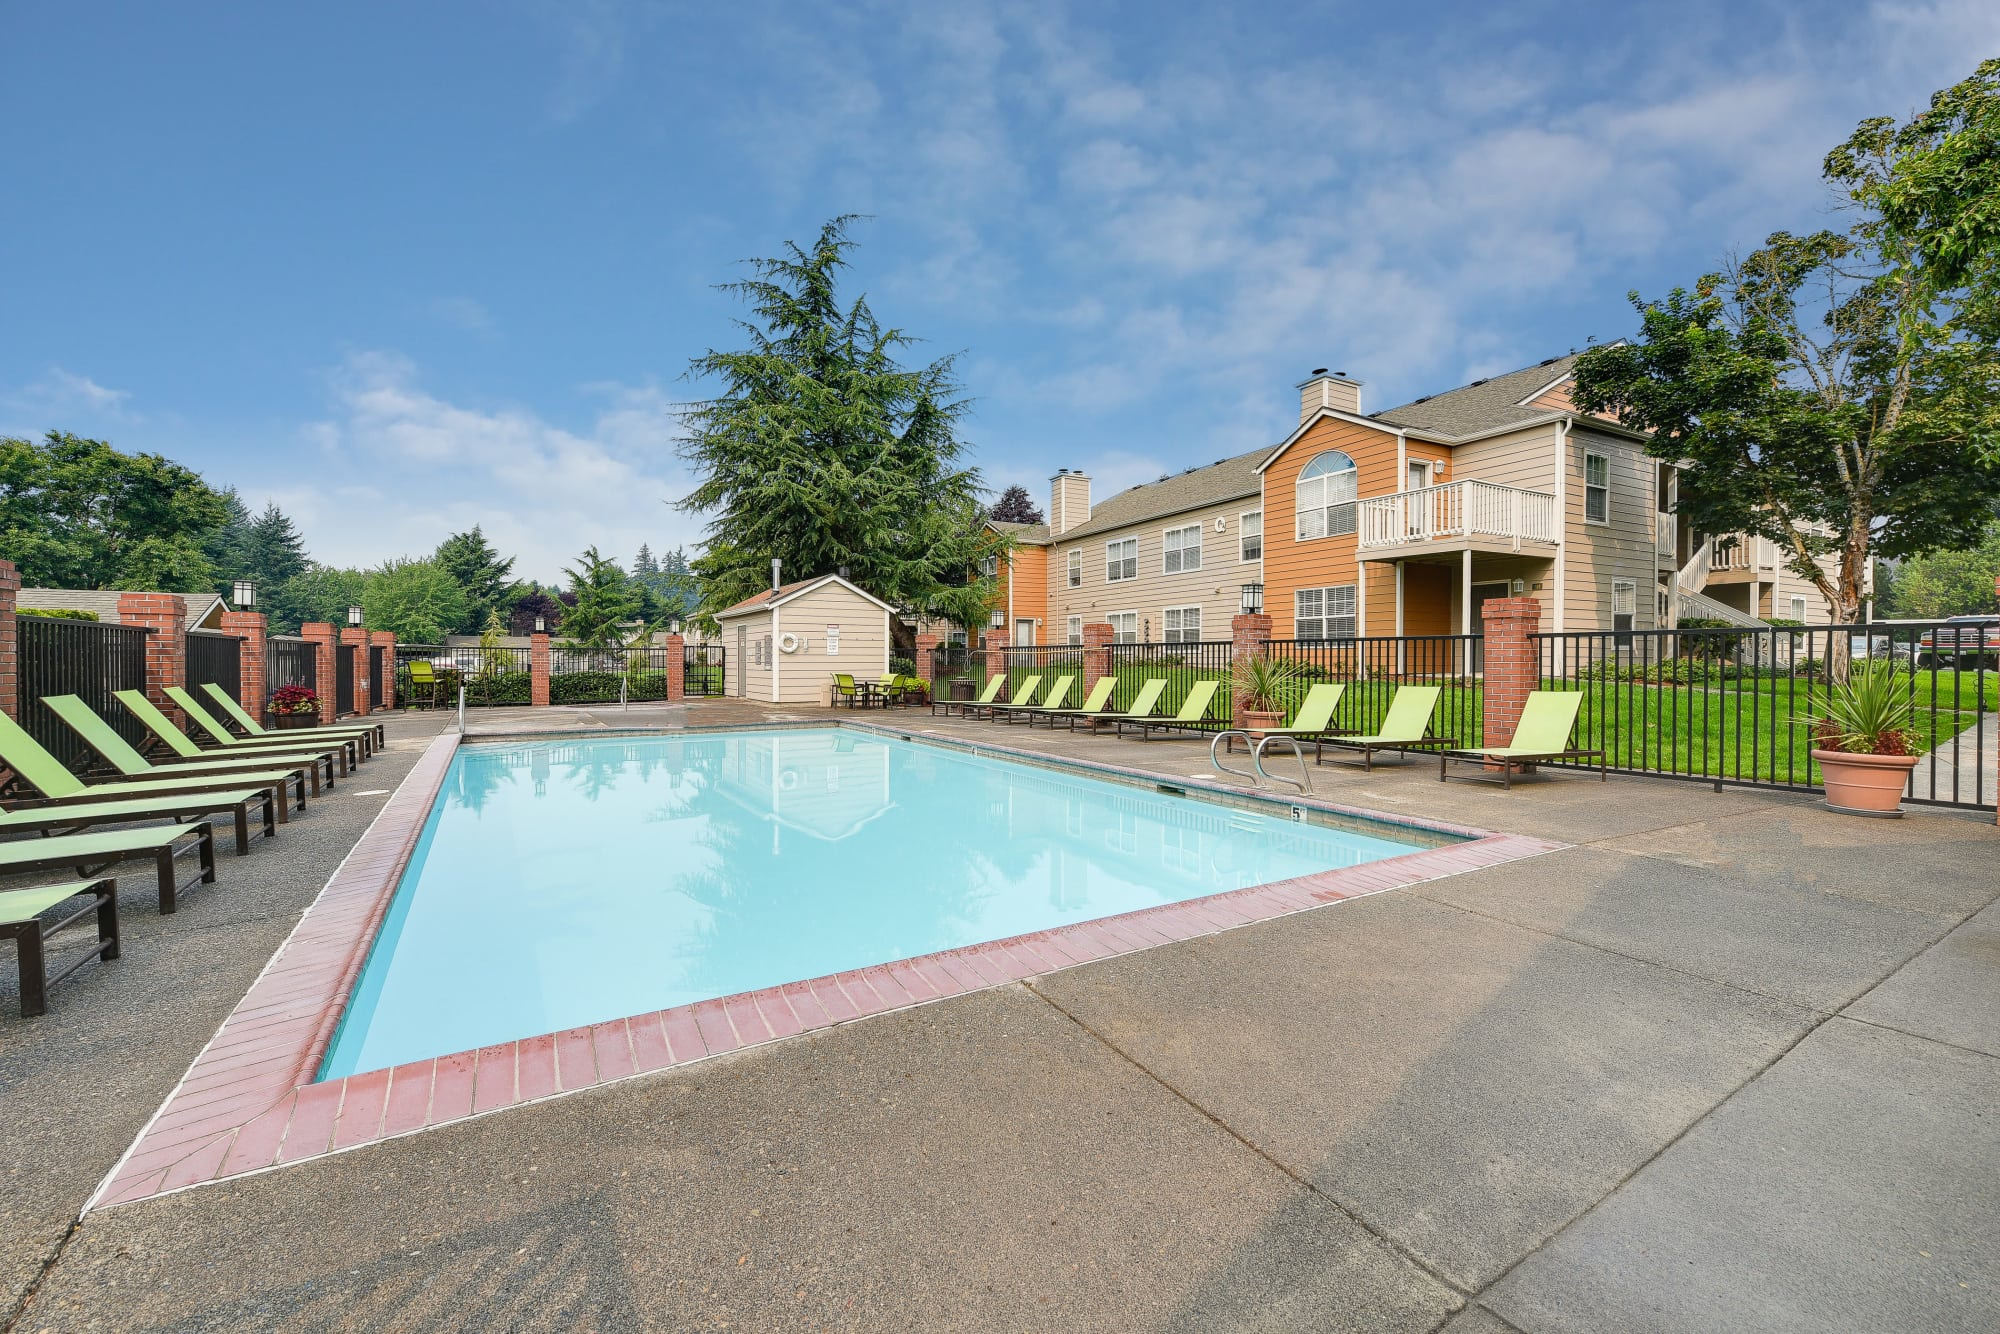 Pool view with lounge chairs at Carriage Park Apartments